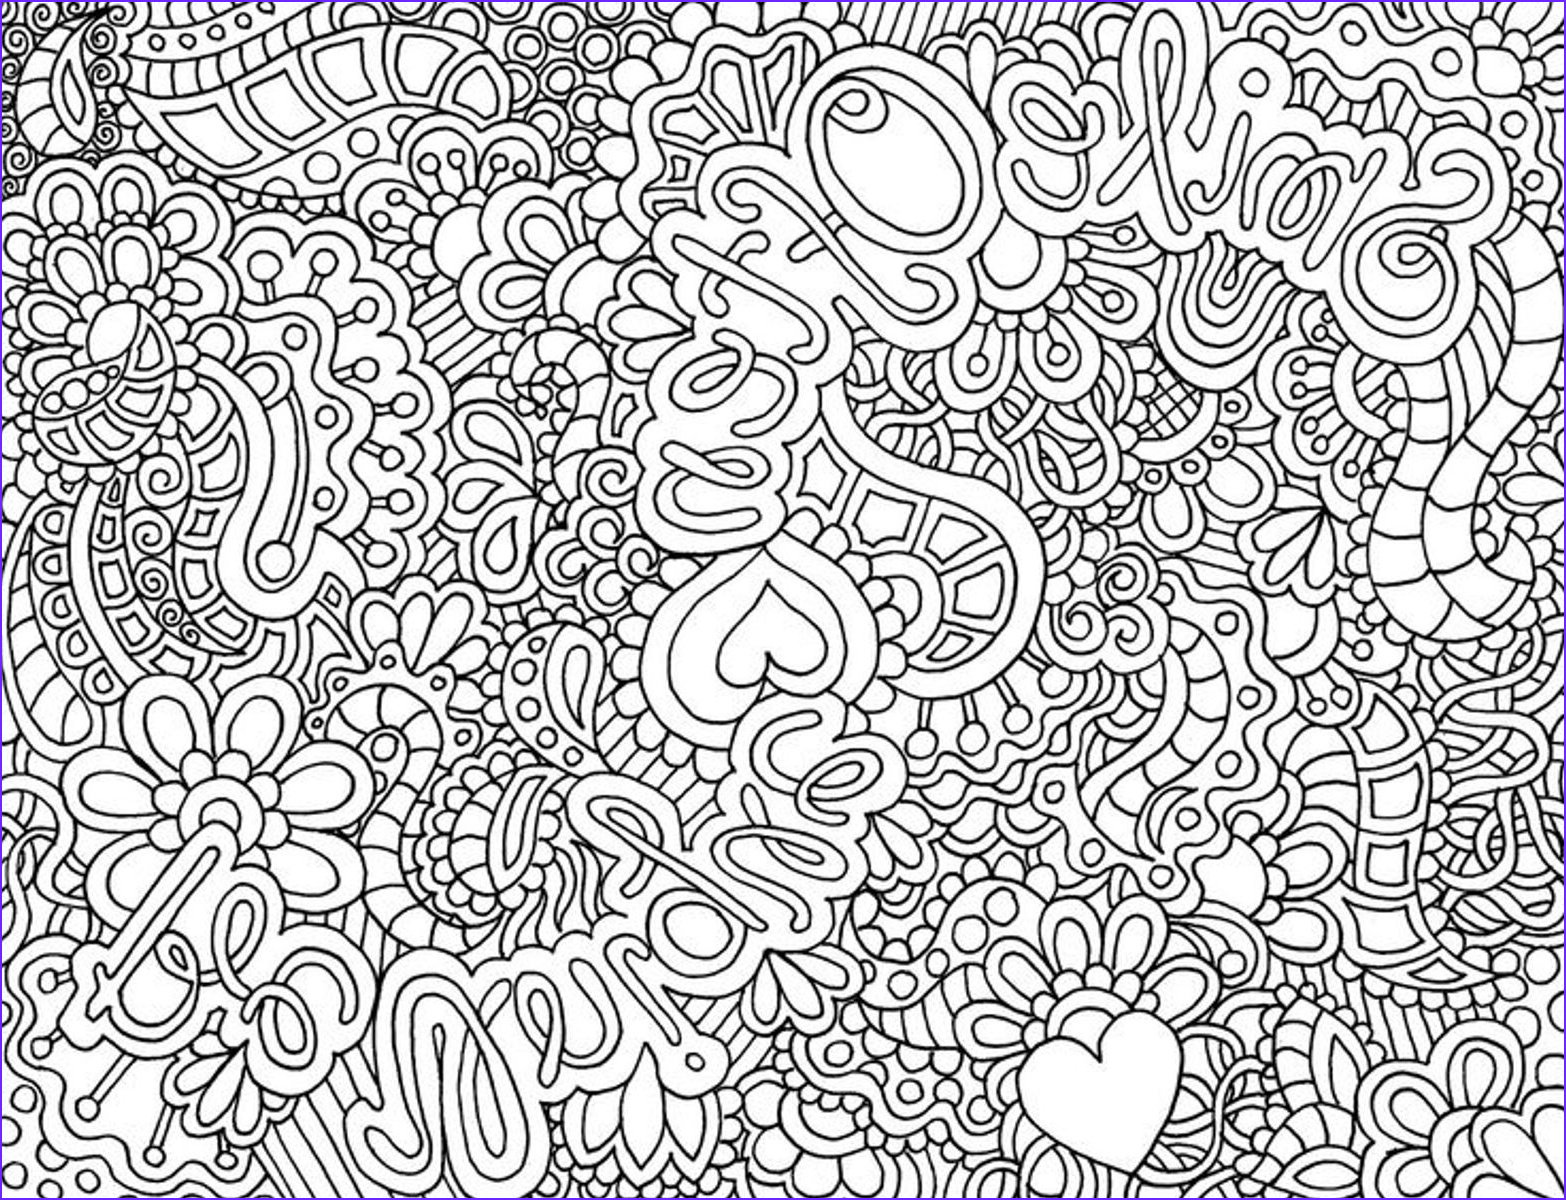 Coloring Images for Adults Elegant Stock Hard Coloring Pages for Adults Best Coloring Pages for Kids